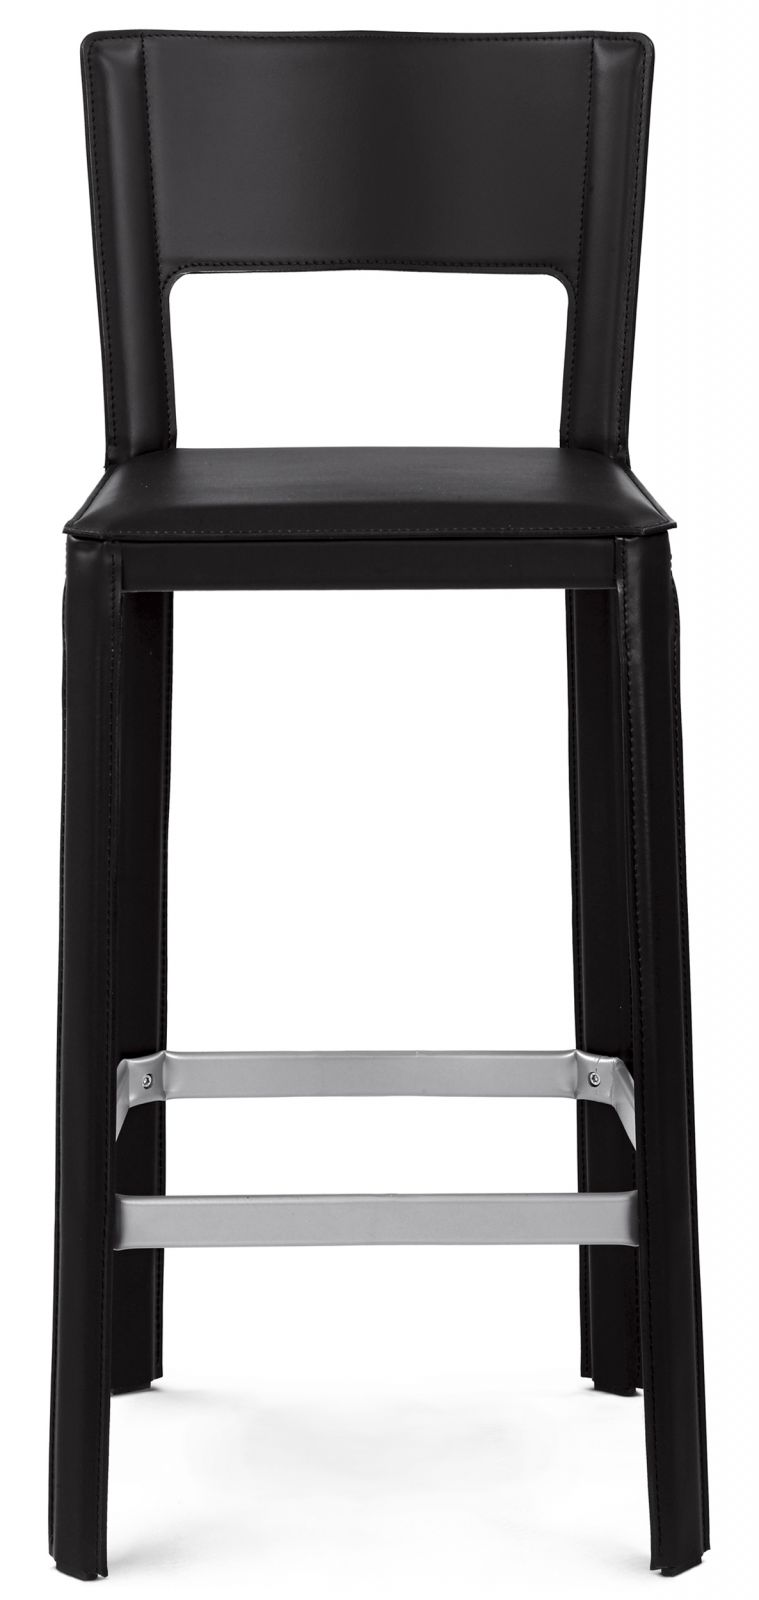 modern-bar-stools-Italian-furniture-large (21).jpg